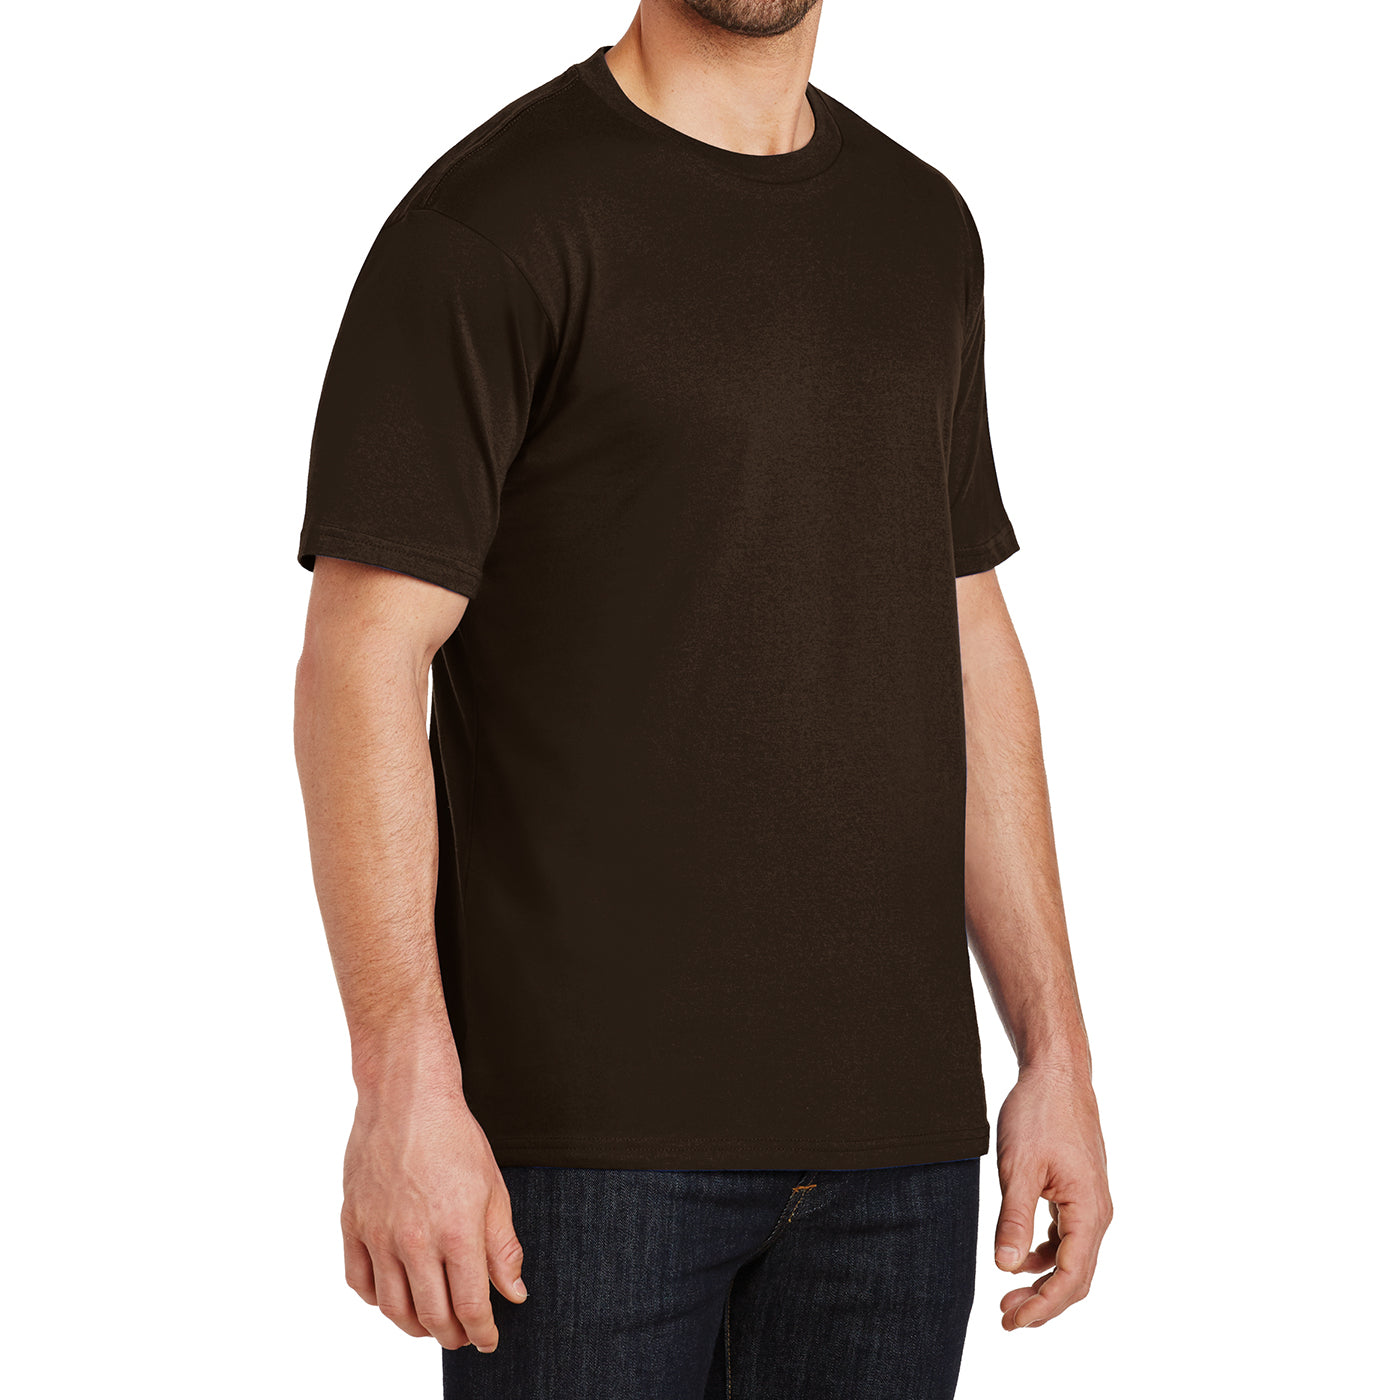 Mens Perfect Weight Crew Tee - Espresso- Side